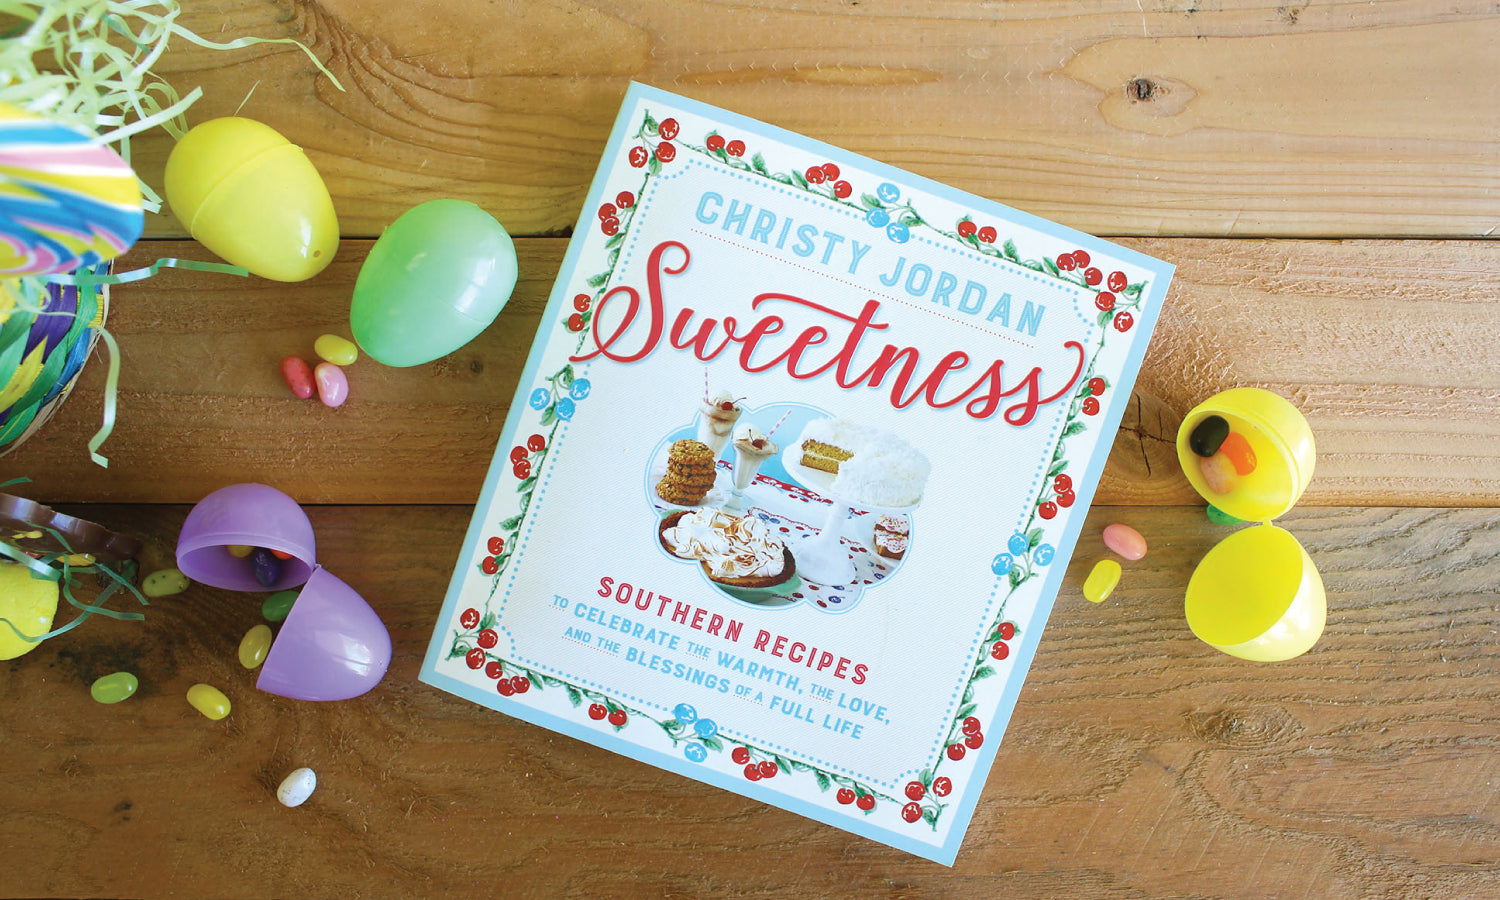 Christy Jordan's Sweetness Recipe Book